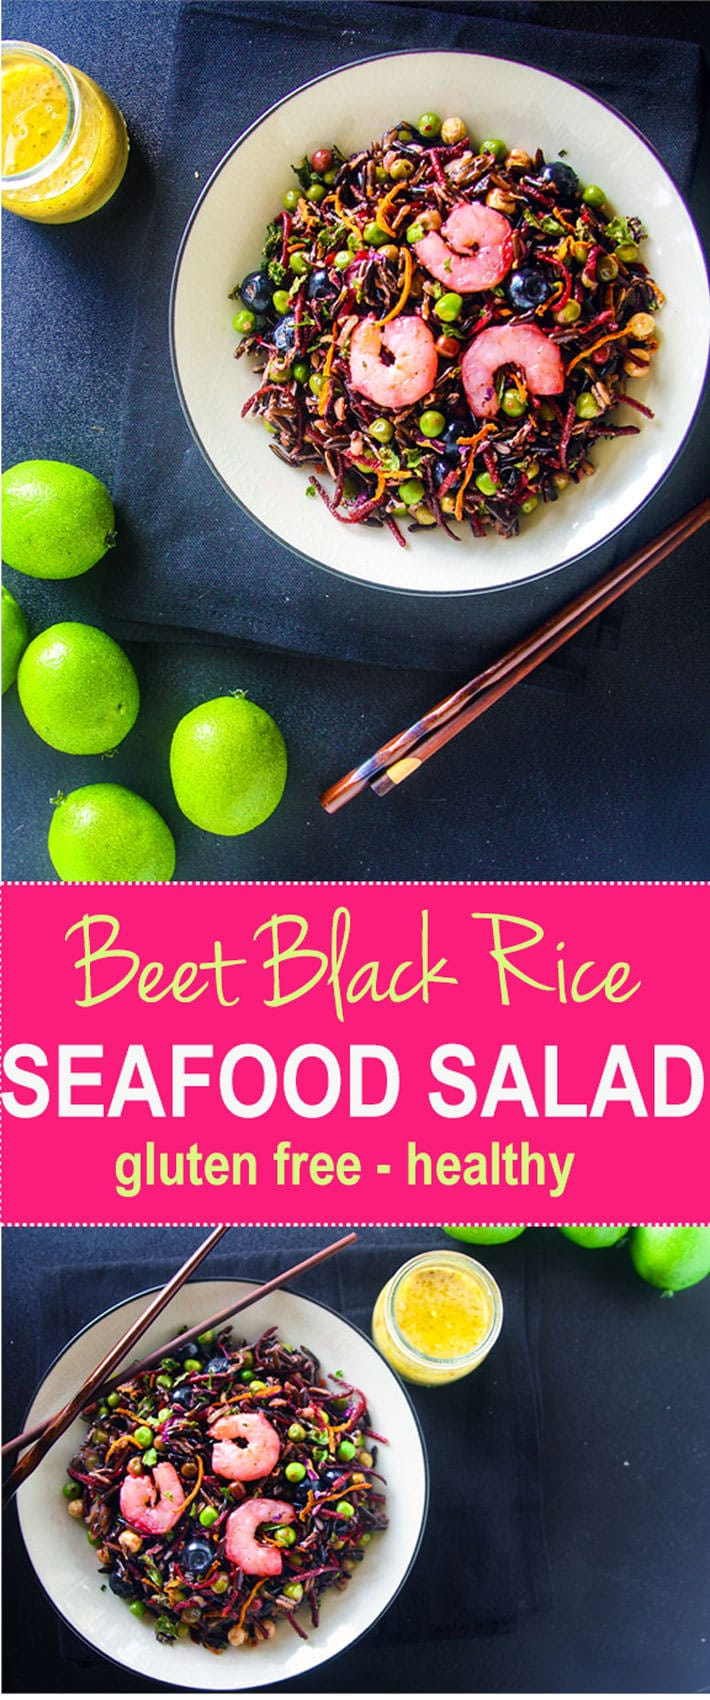 """Load up on antioxidants with a gluten free shrimp salad! With beets, black rice, and a lemon-lime vinaigrette, this powerhouse salad is great for """"Spring Cleaning"""" your diet! It's colorful, flavorful, and protein packed! Clean eating made tasty!"""